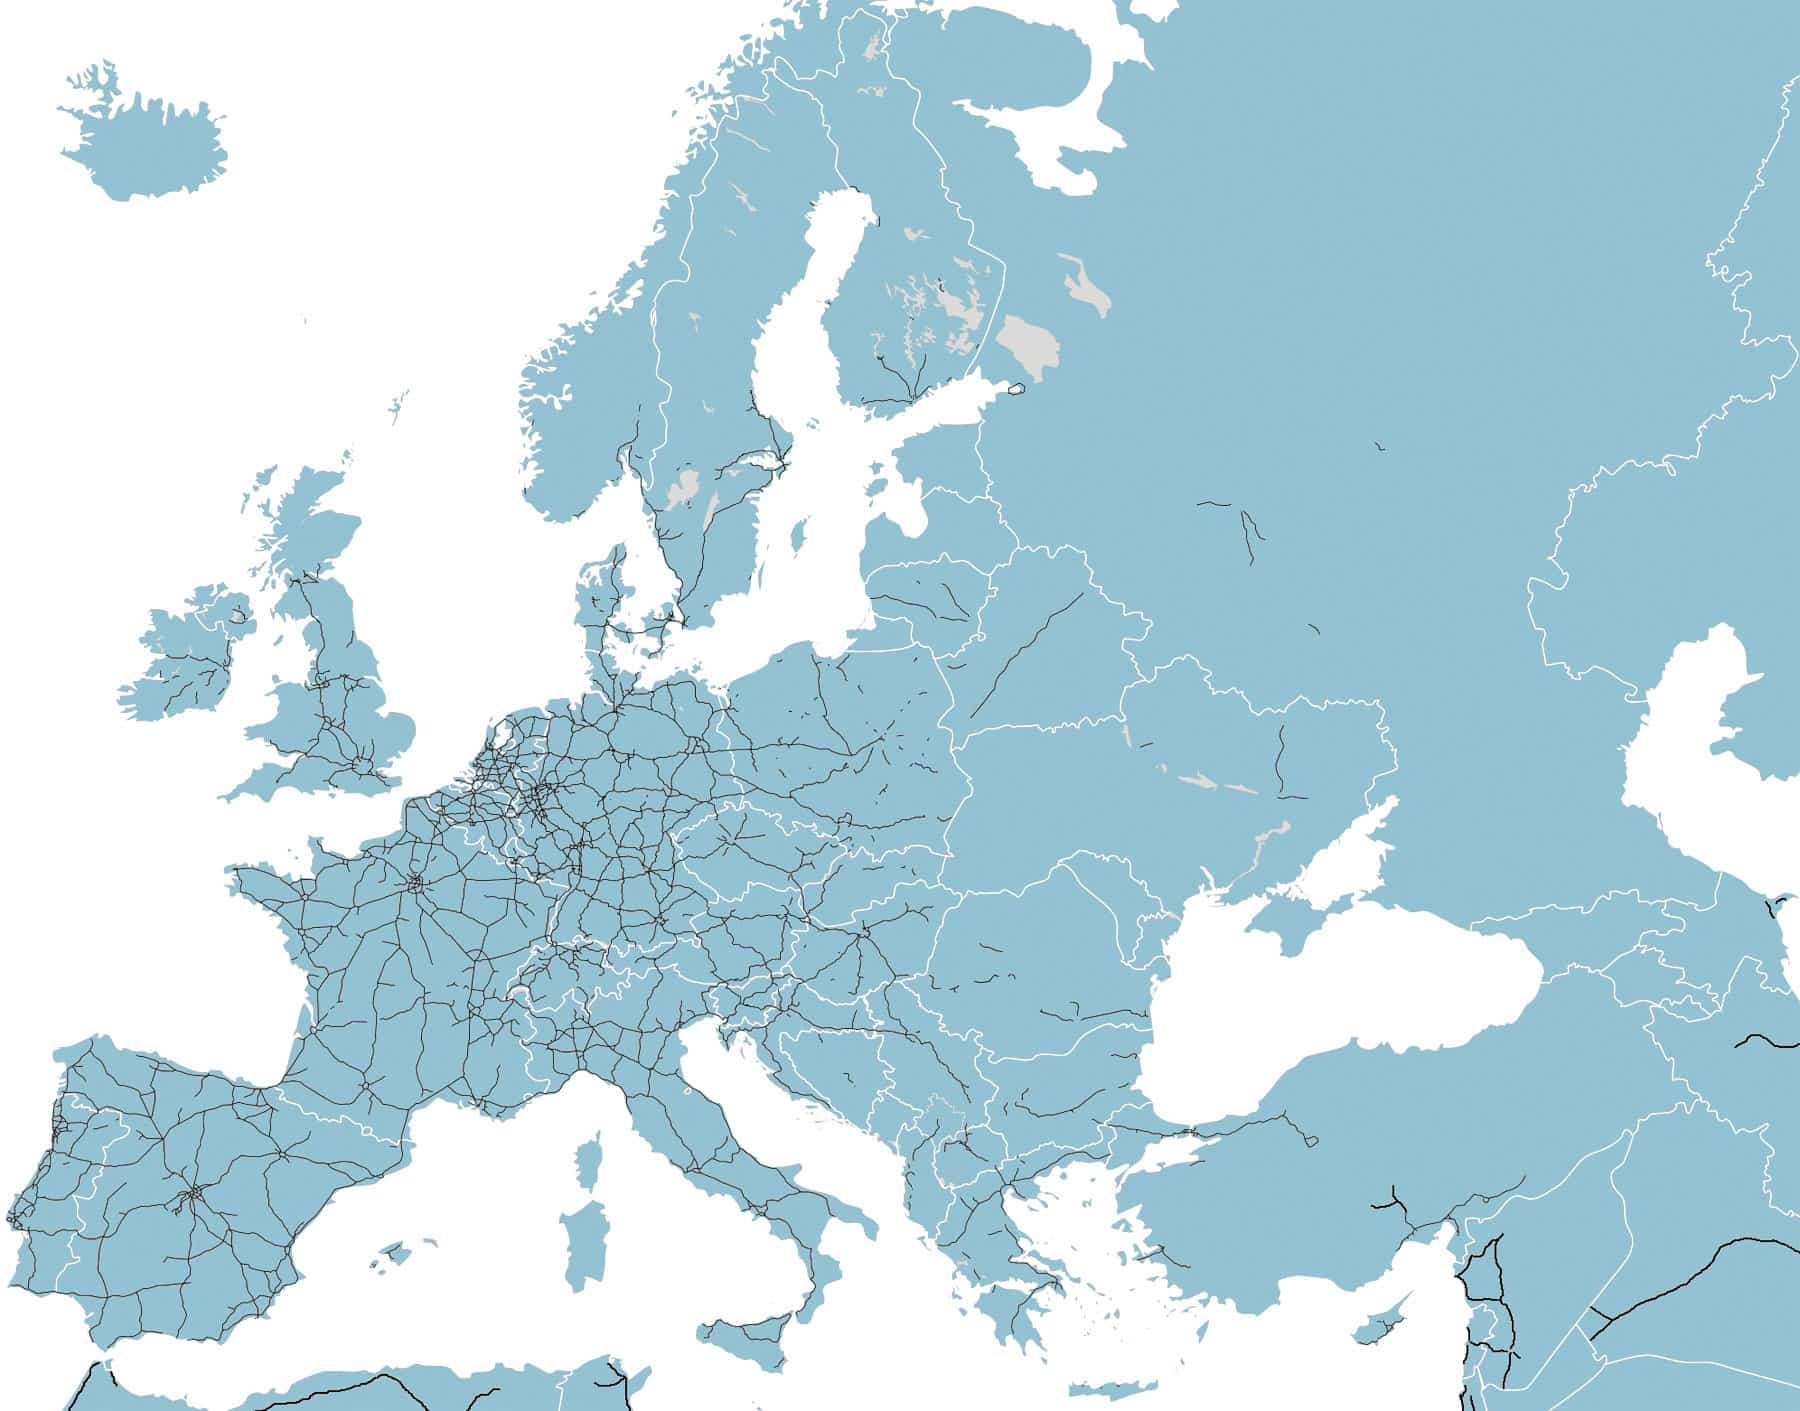 Road Map of Europe